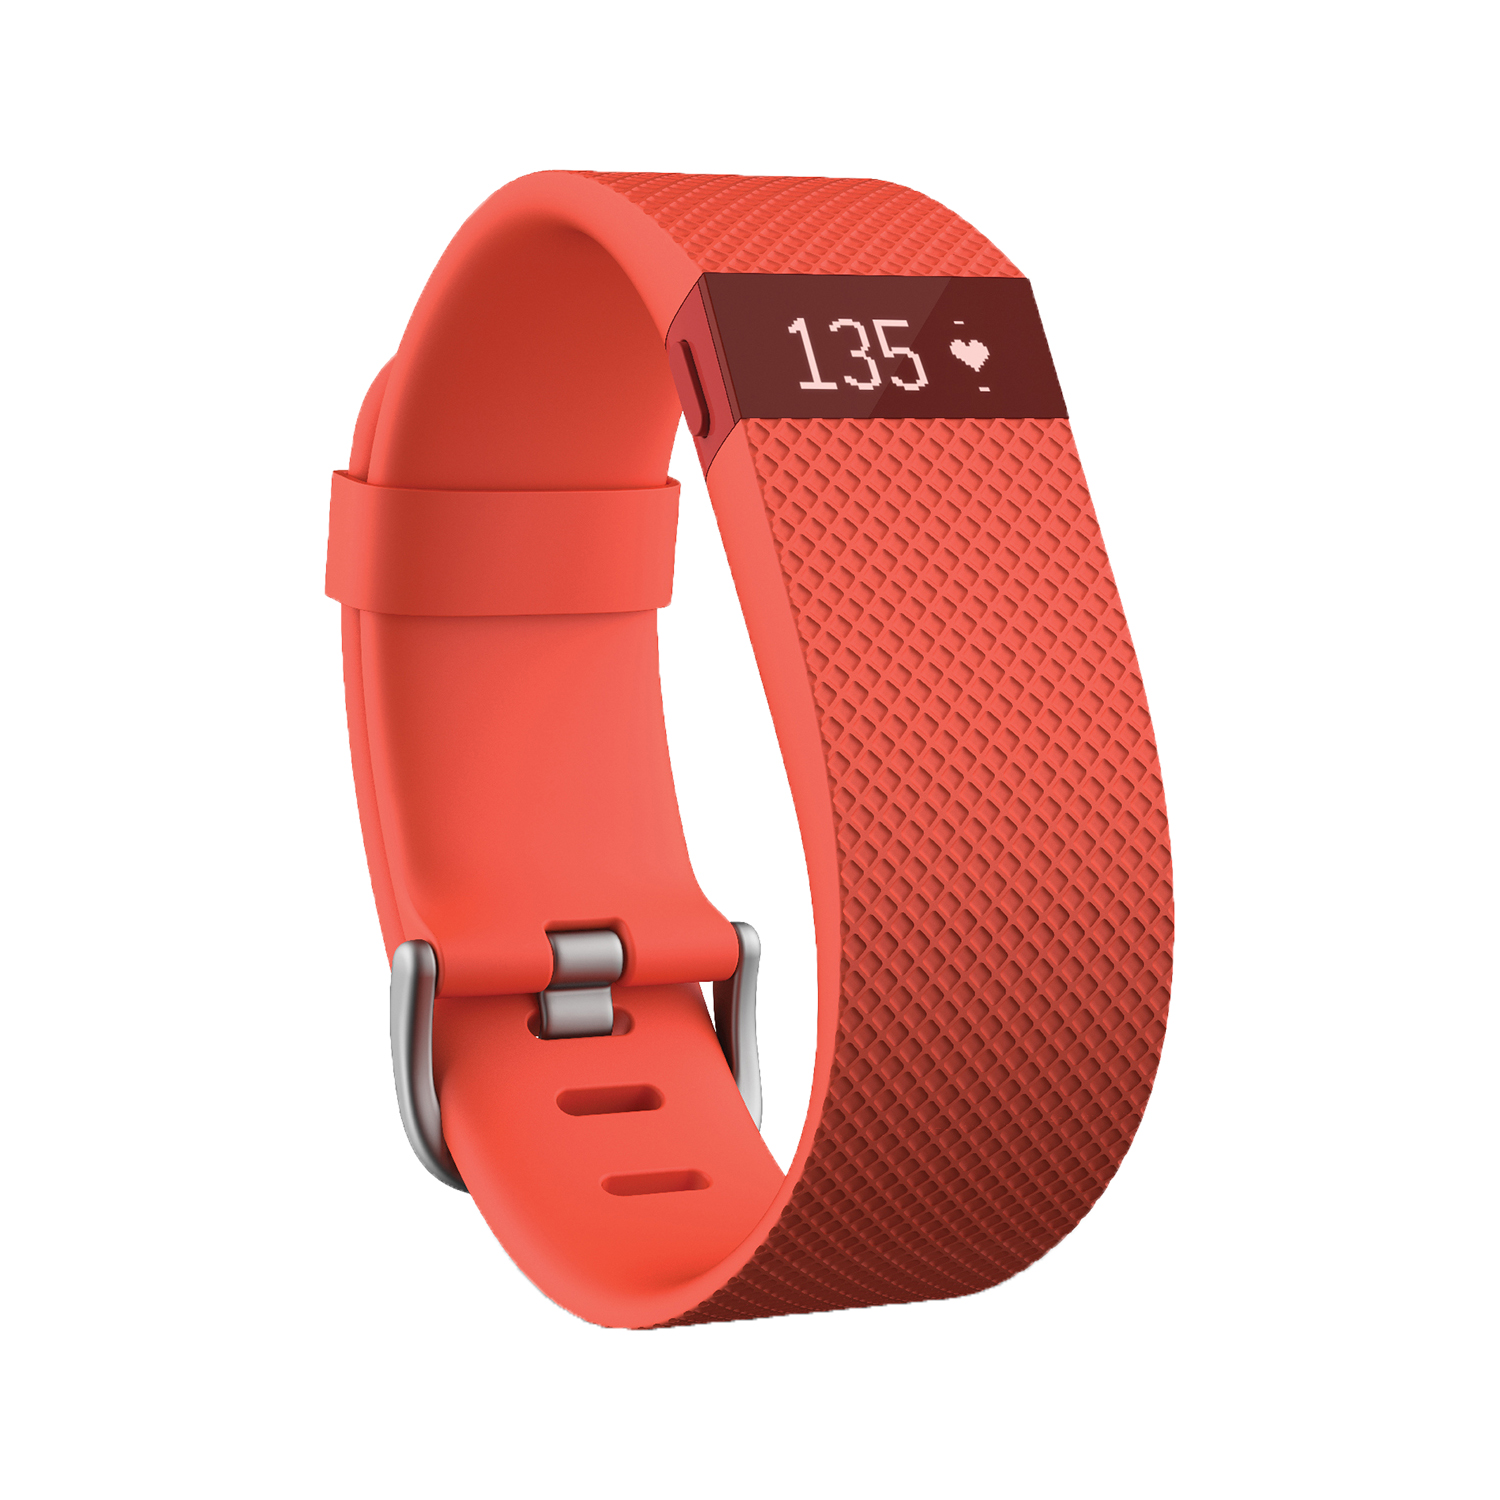 Fitbit Charge HR Heart Rate & Activity Tracker Fitness ...